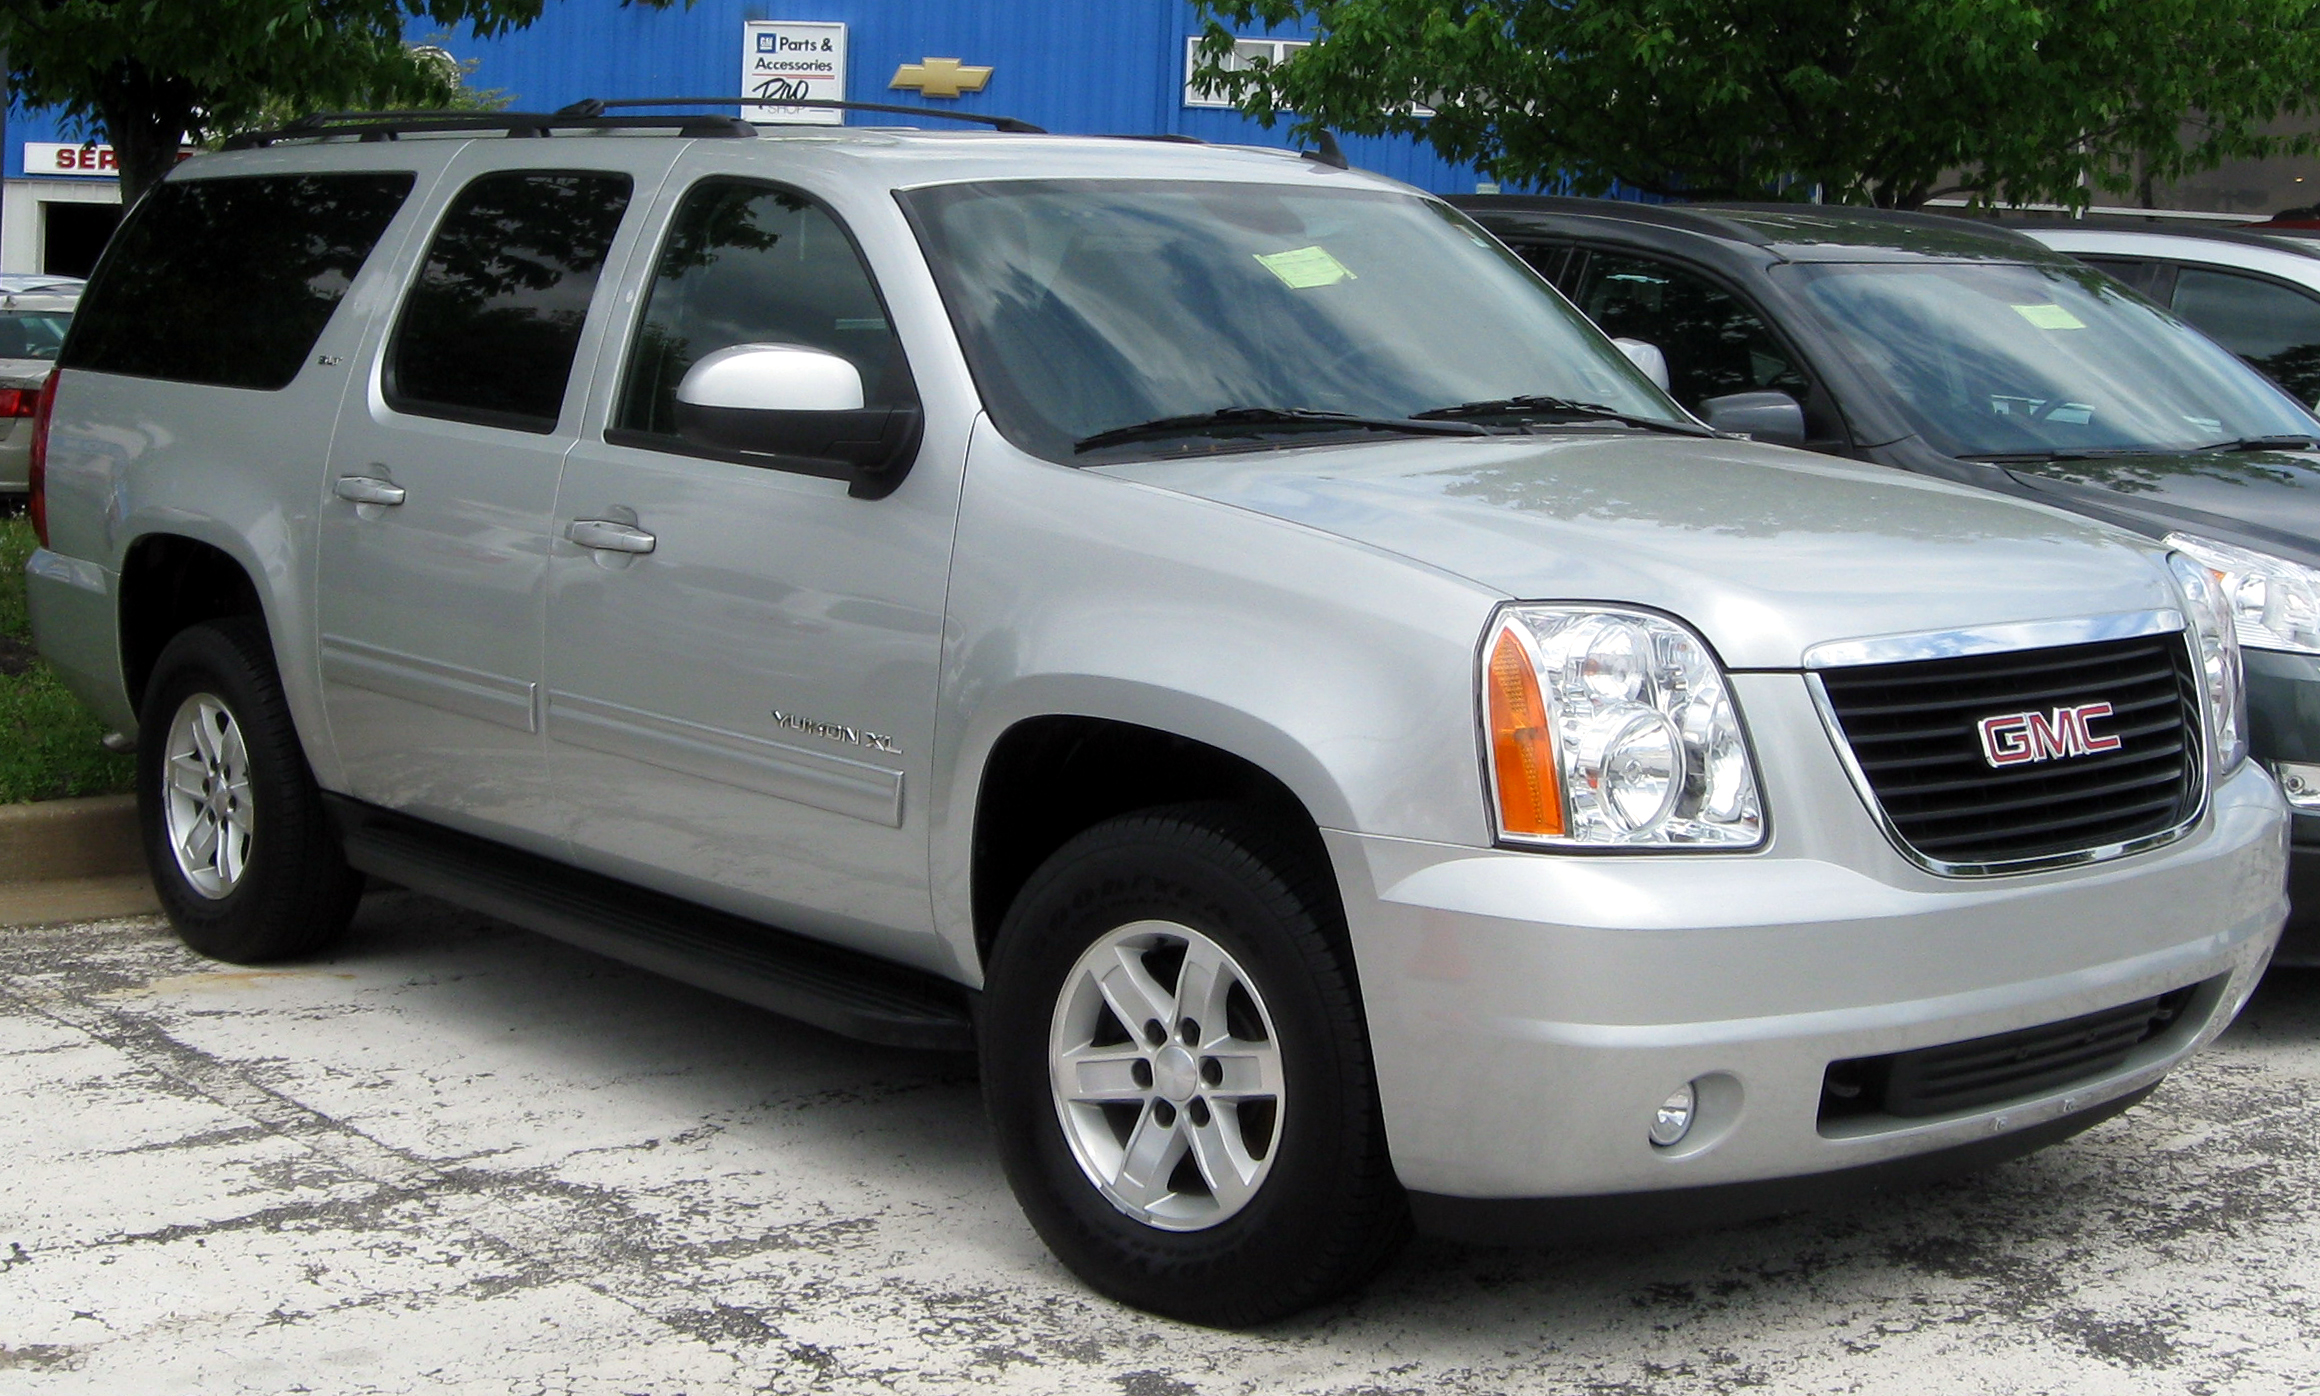 gmc yukon (gmt900) 2009 models